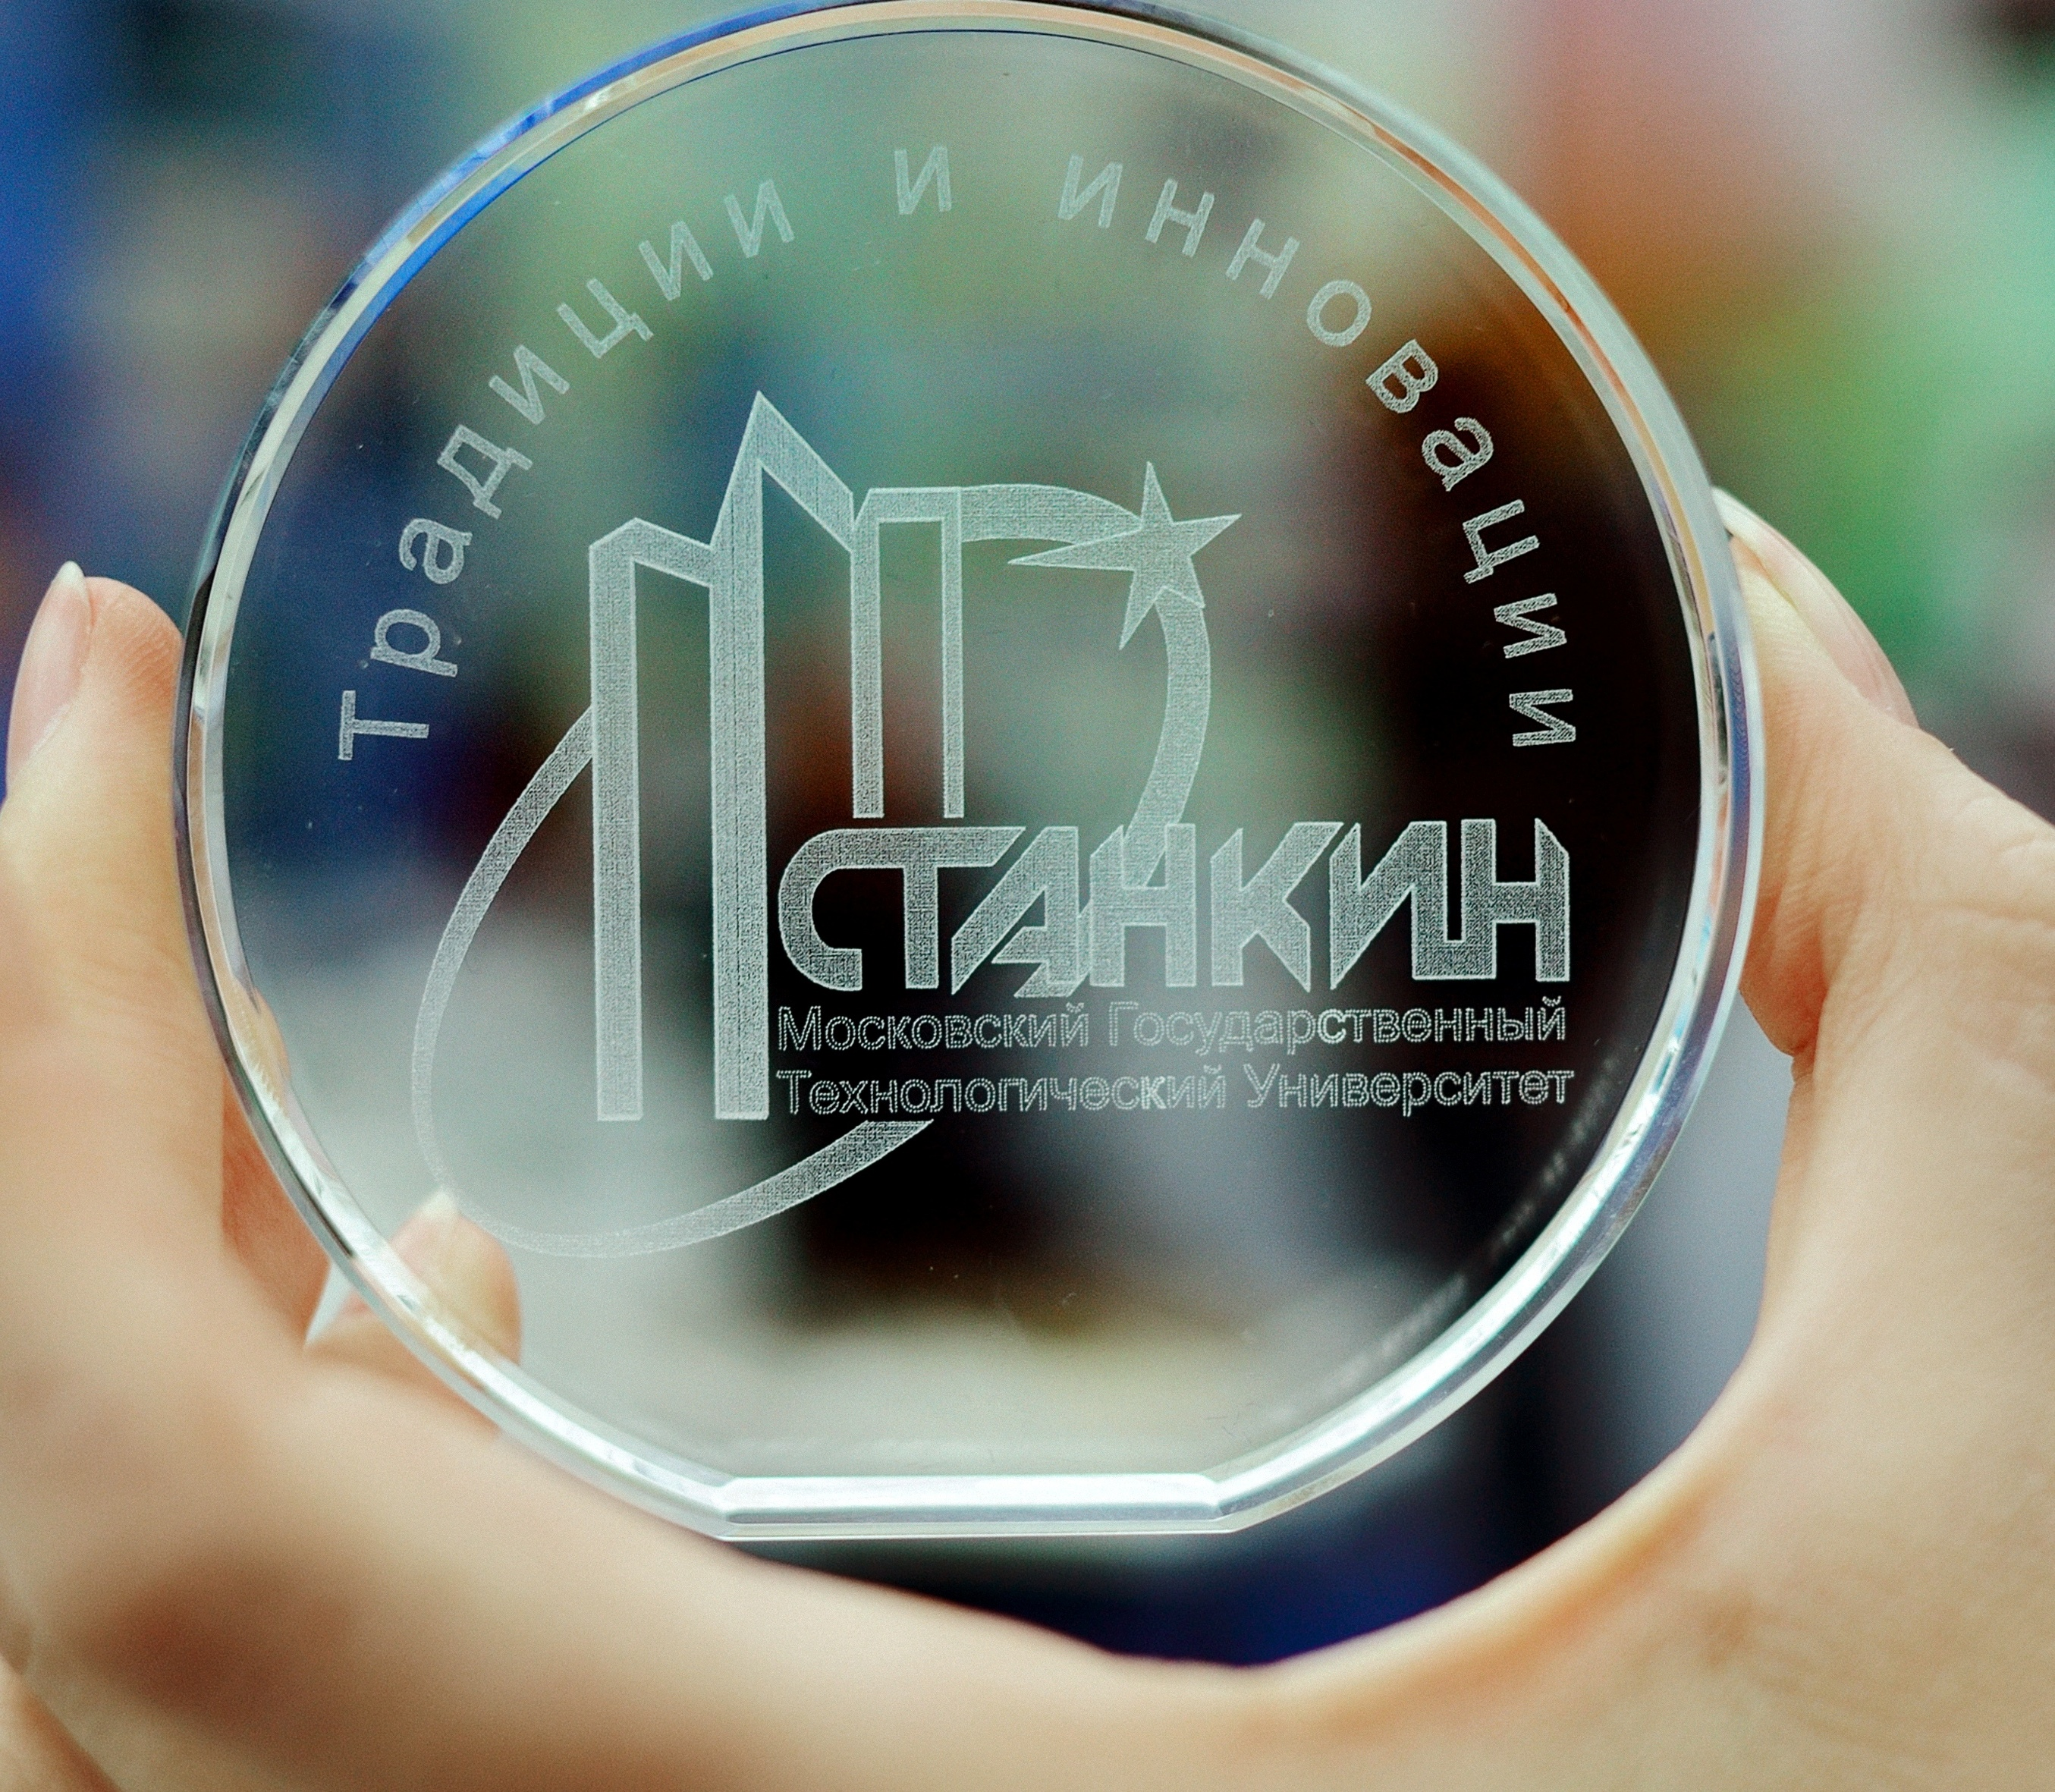 http://ckp-stankin.ru/sites/default/files/20_0.jpg